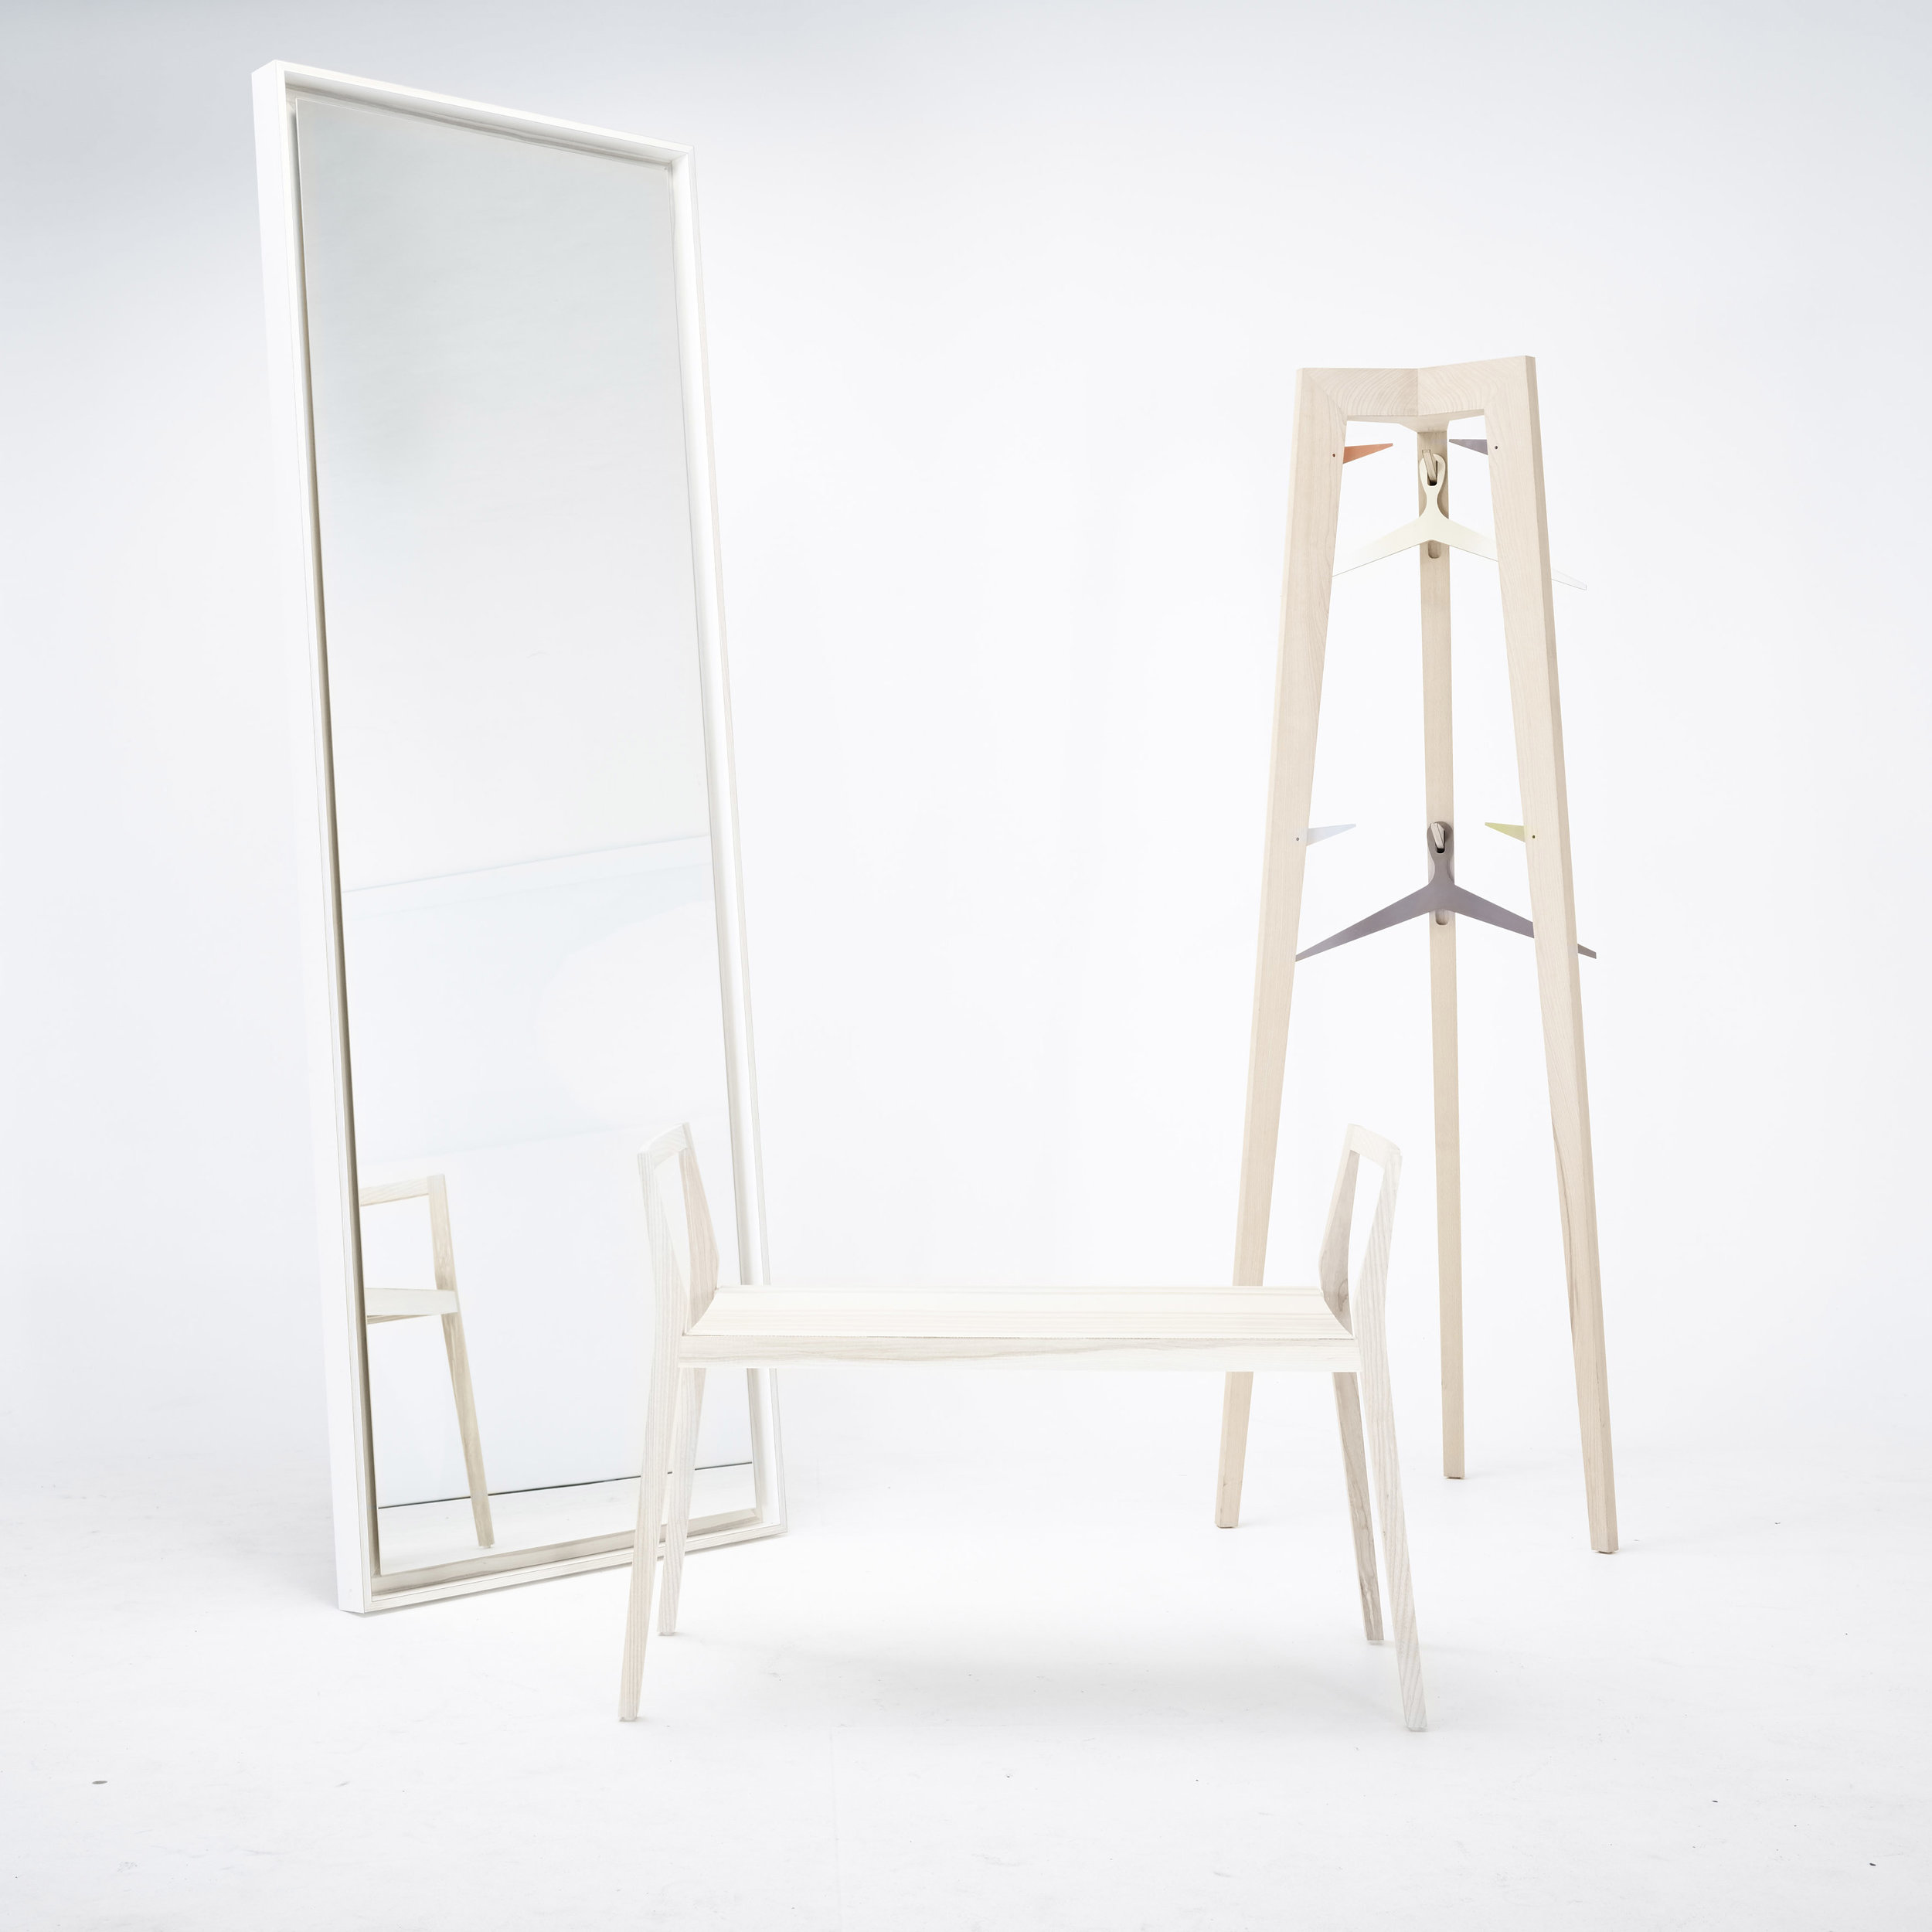 mint furniture mirror